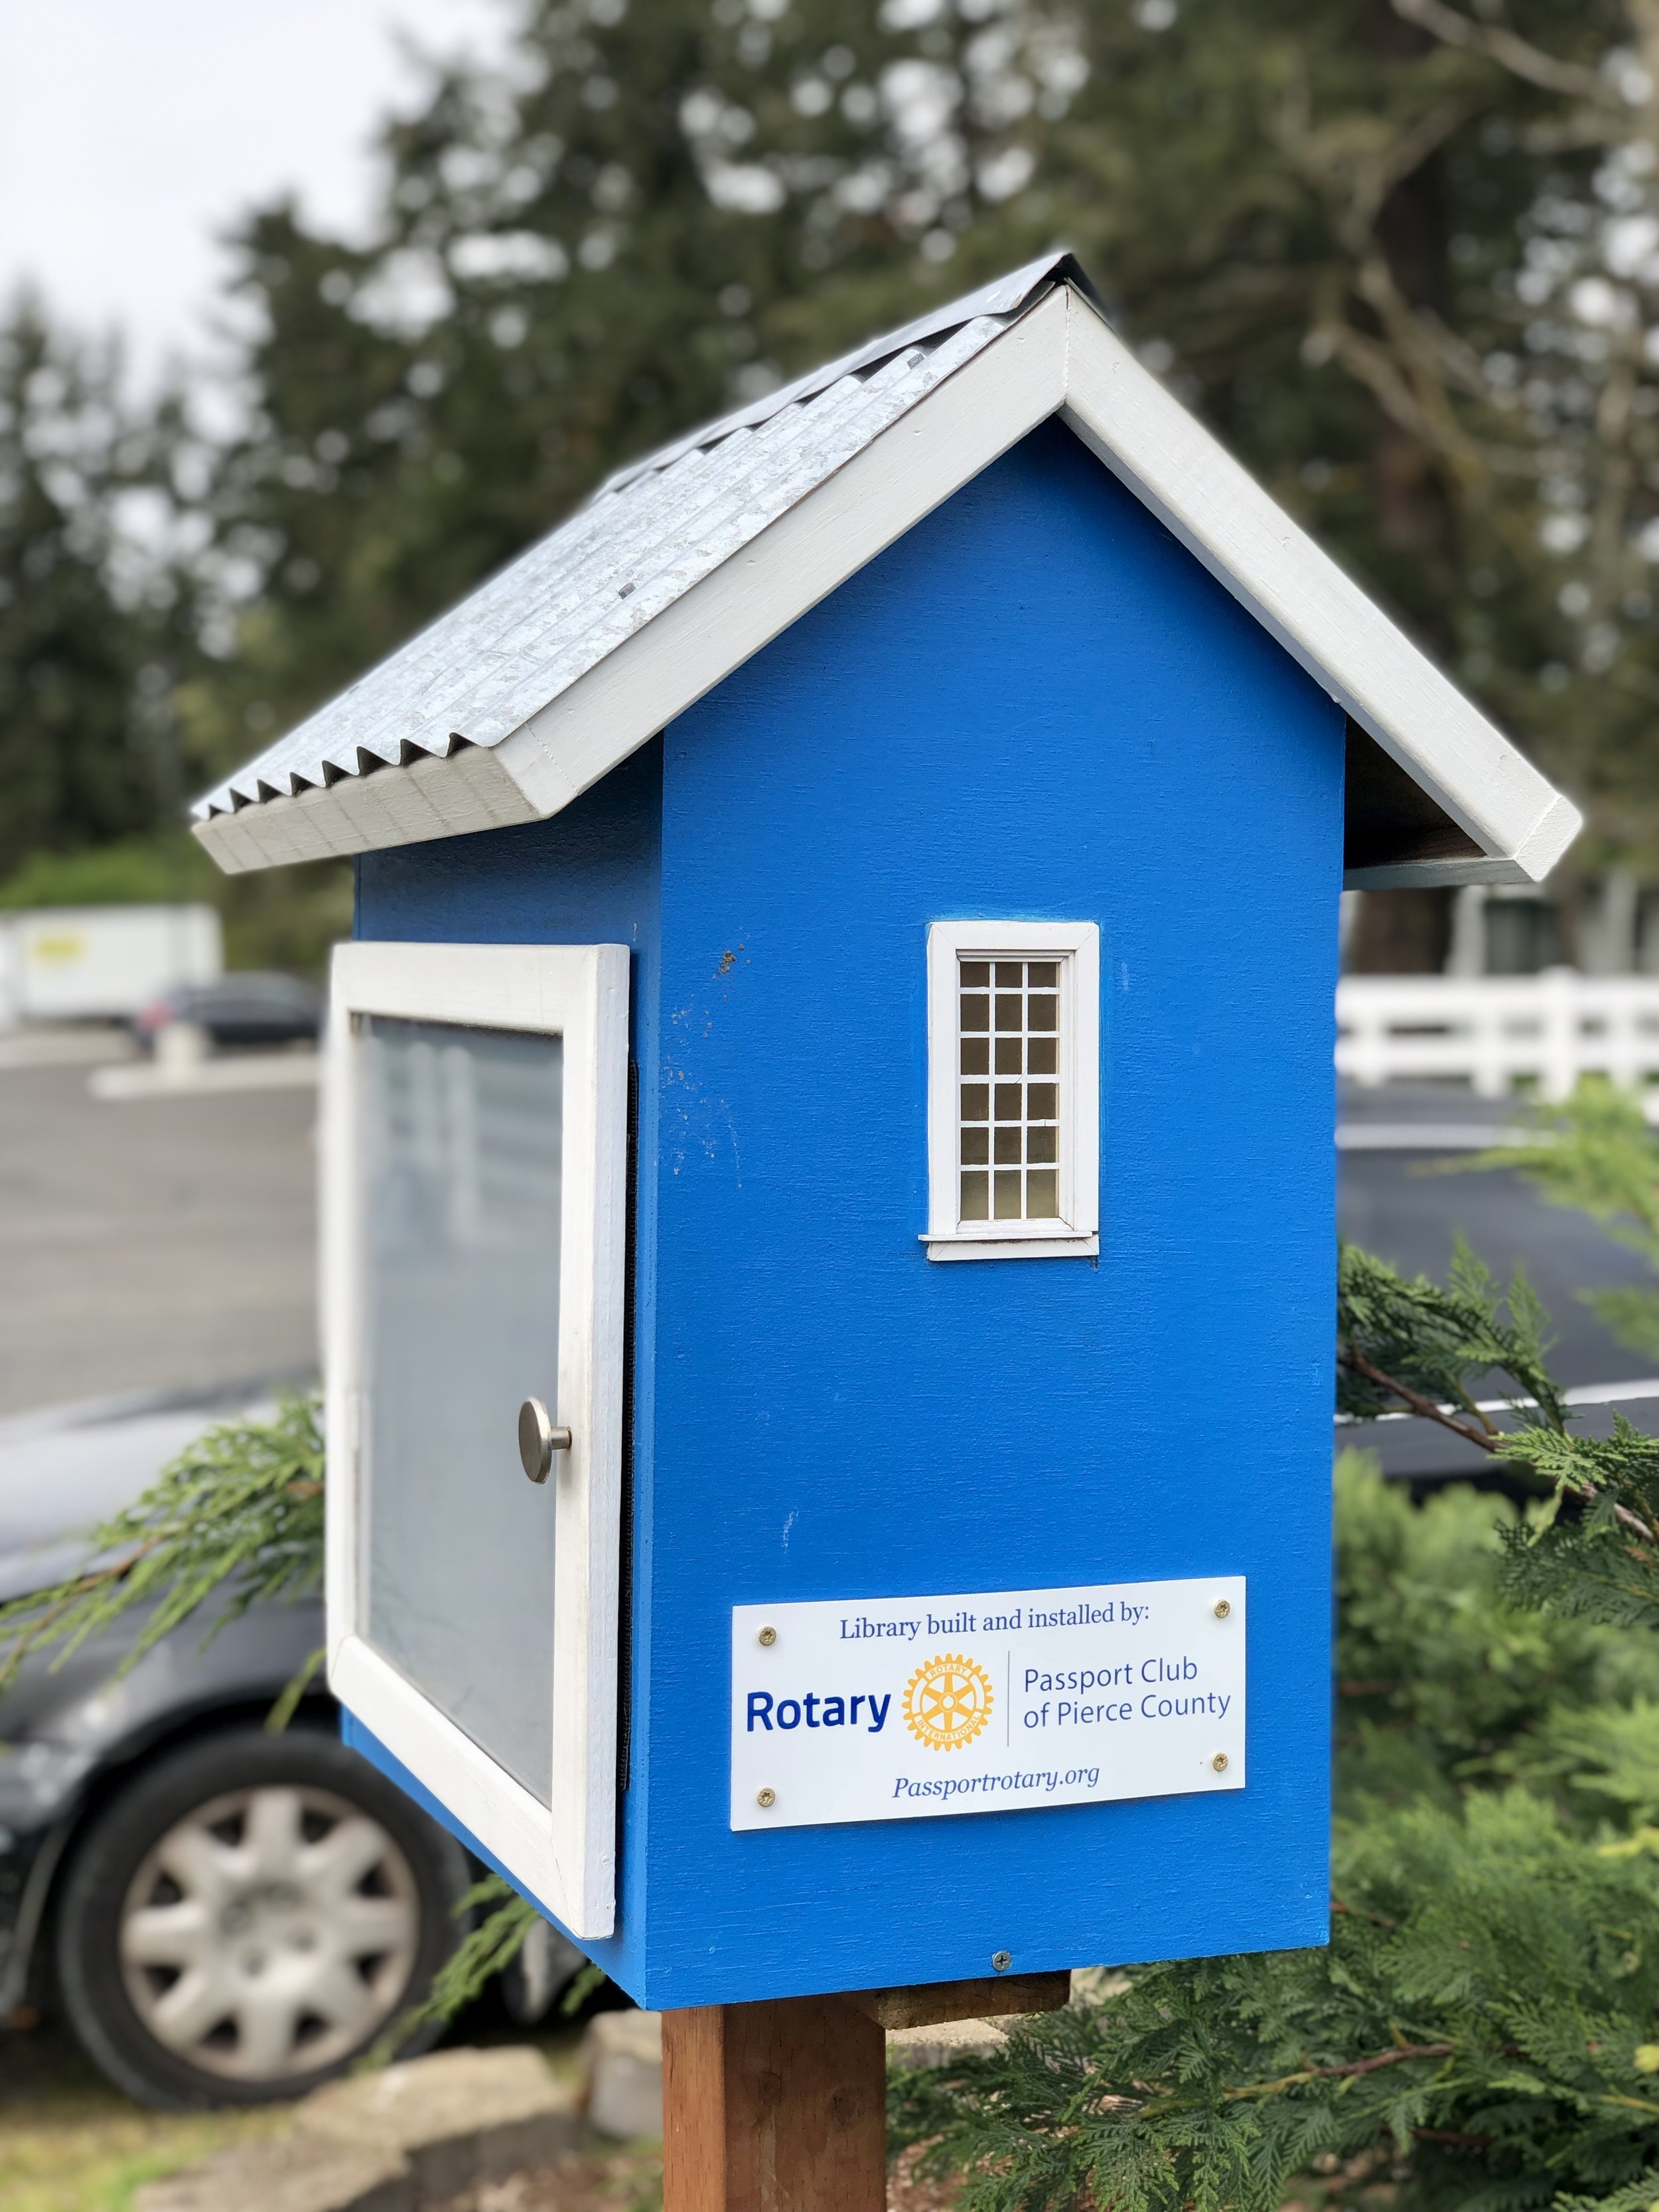 Wow!  Rotary Passport Club of Pierce County  created this library for the Emergency Food Network. How good to see community groups supporting each other.